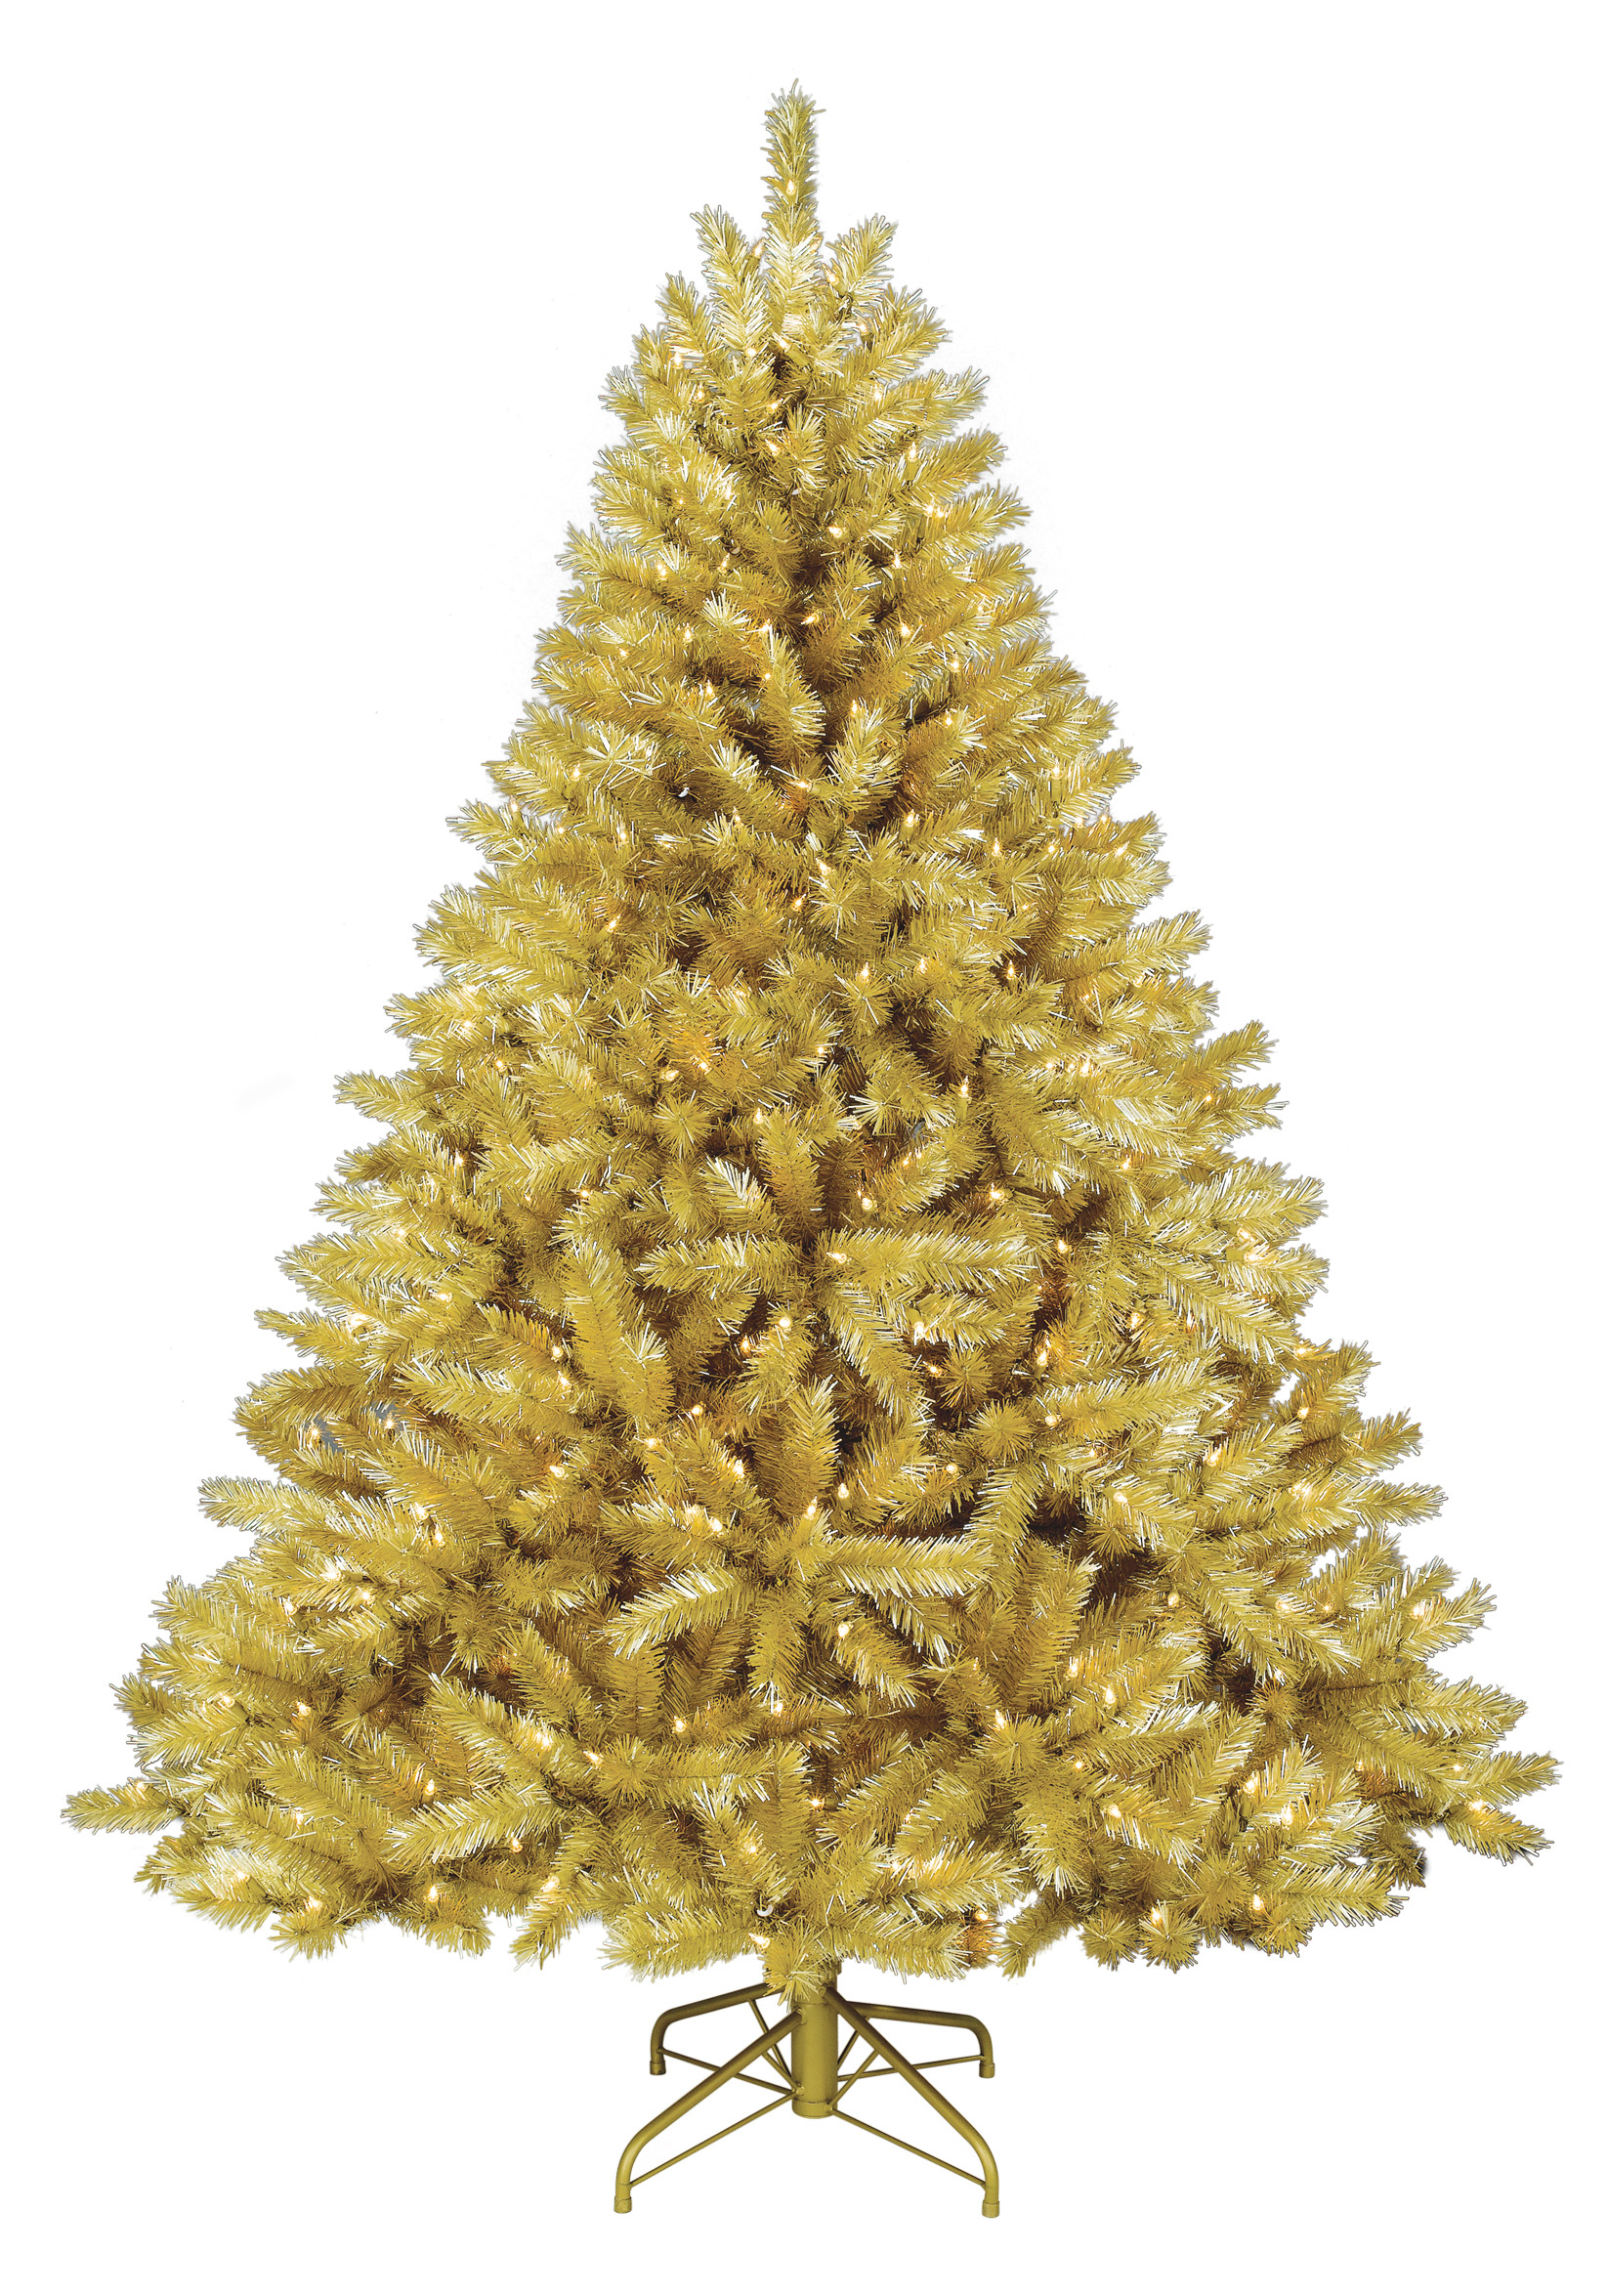 Gold Christmas TreeTreetopias Tree